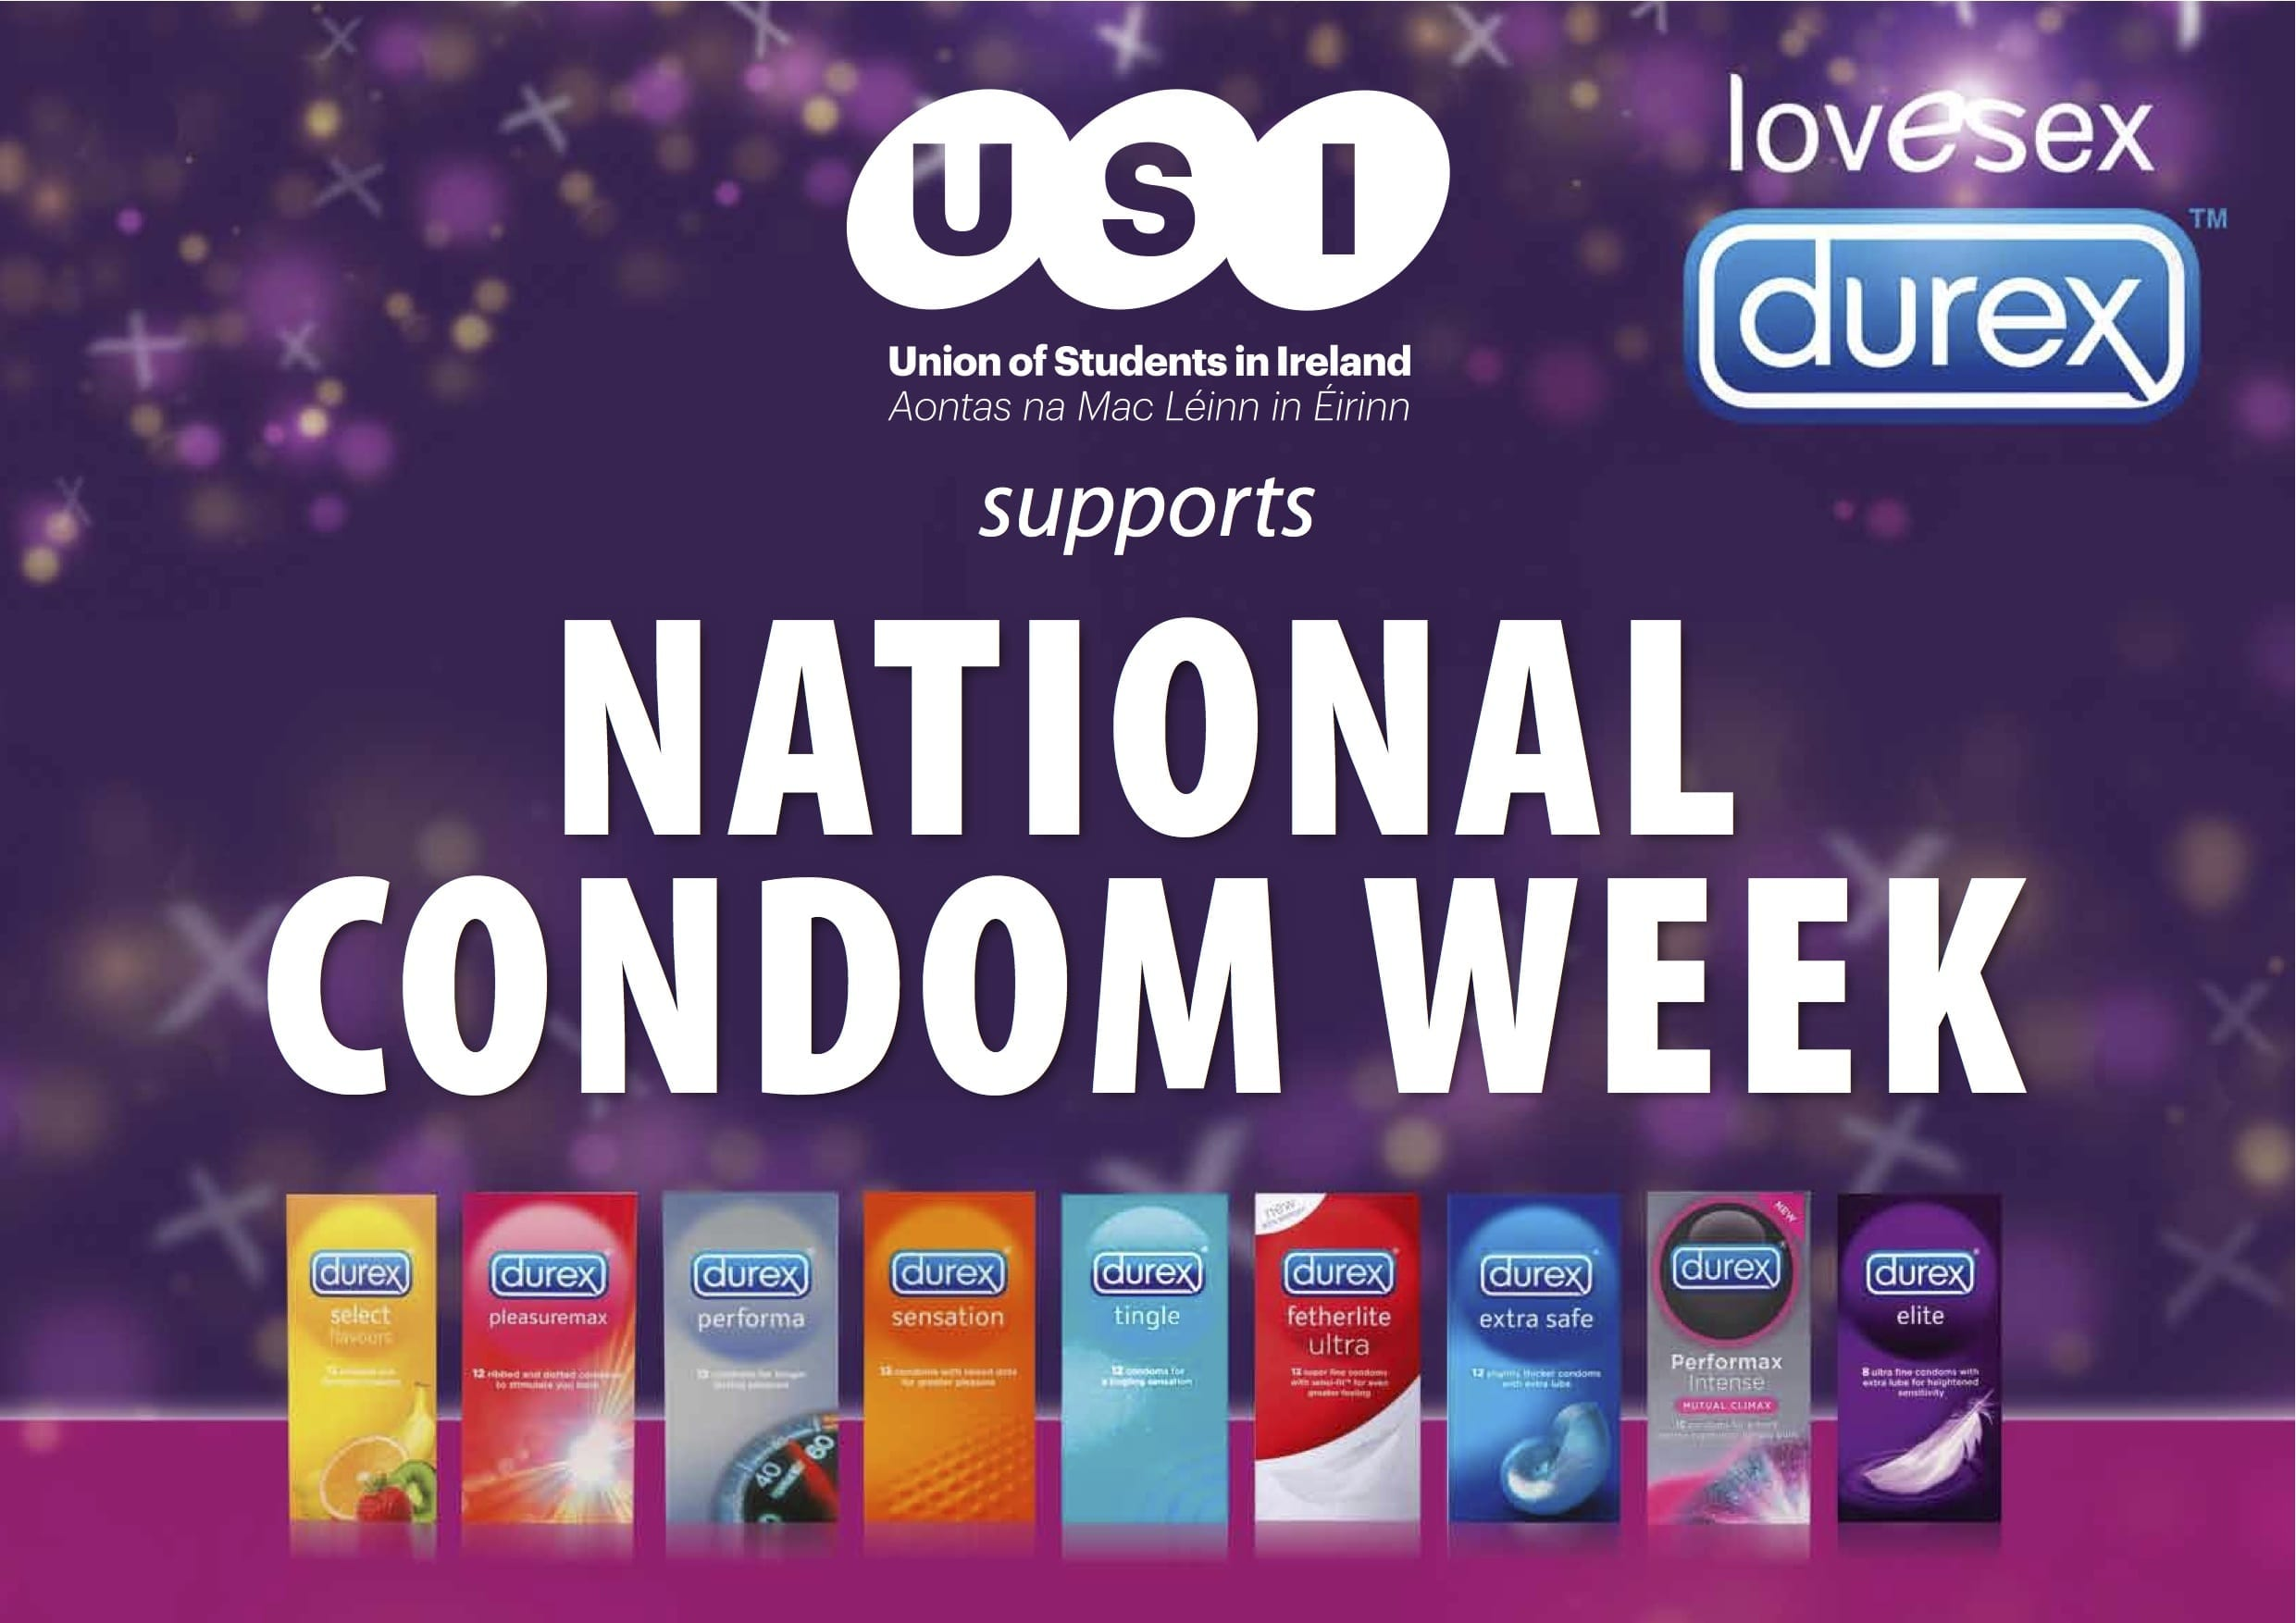 USI supports National Condom Week 2012